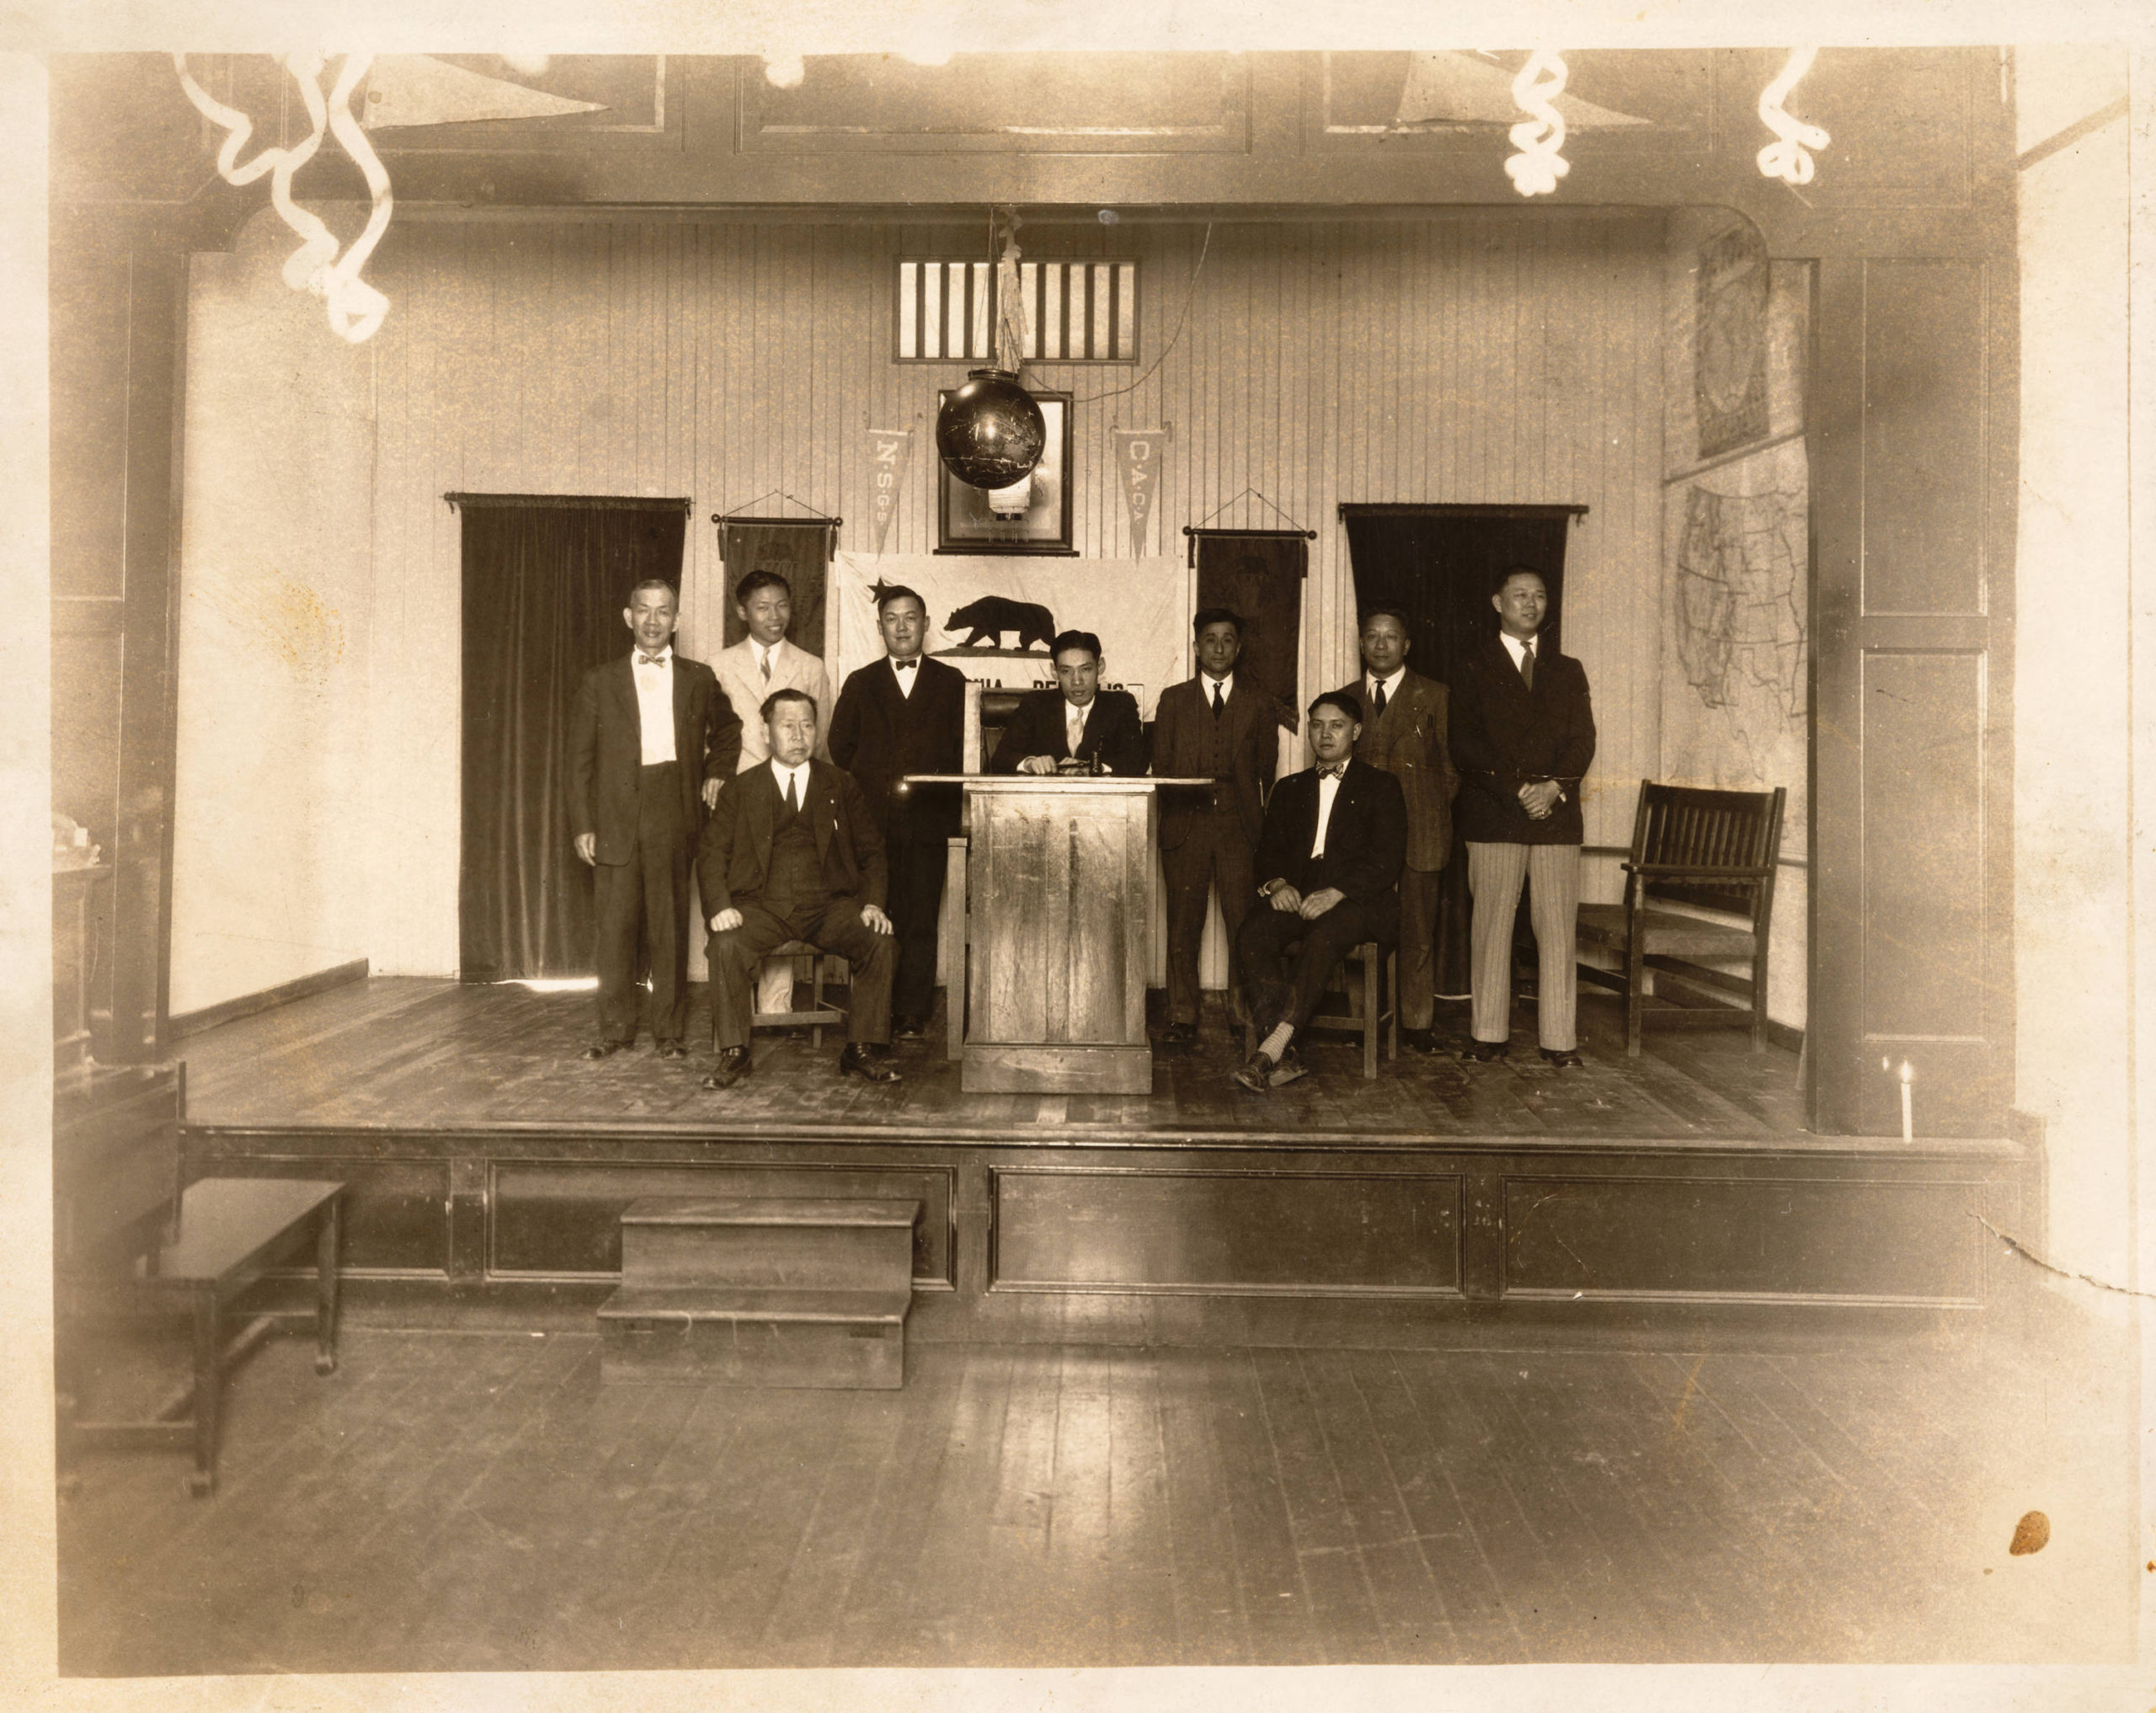 Y. C. Hong (center, behind podium) and members of the Chinese American Citizens Alliance (1928)